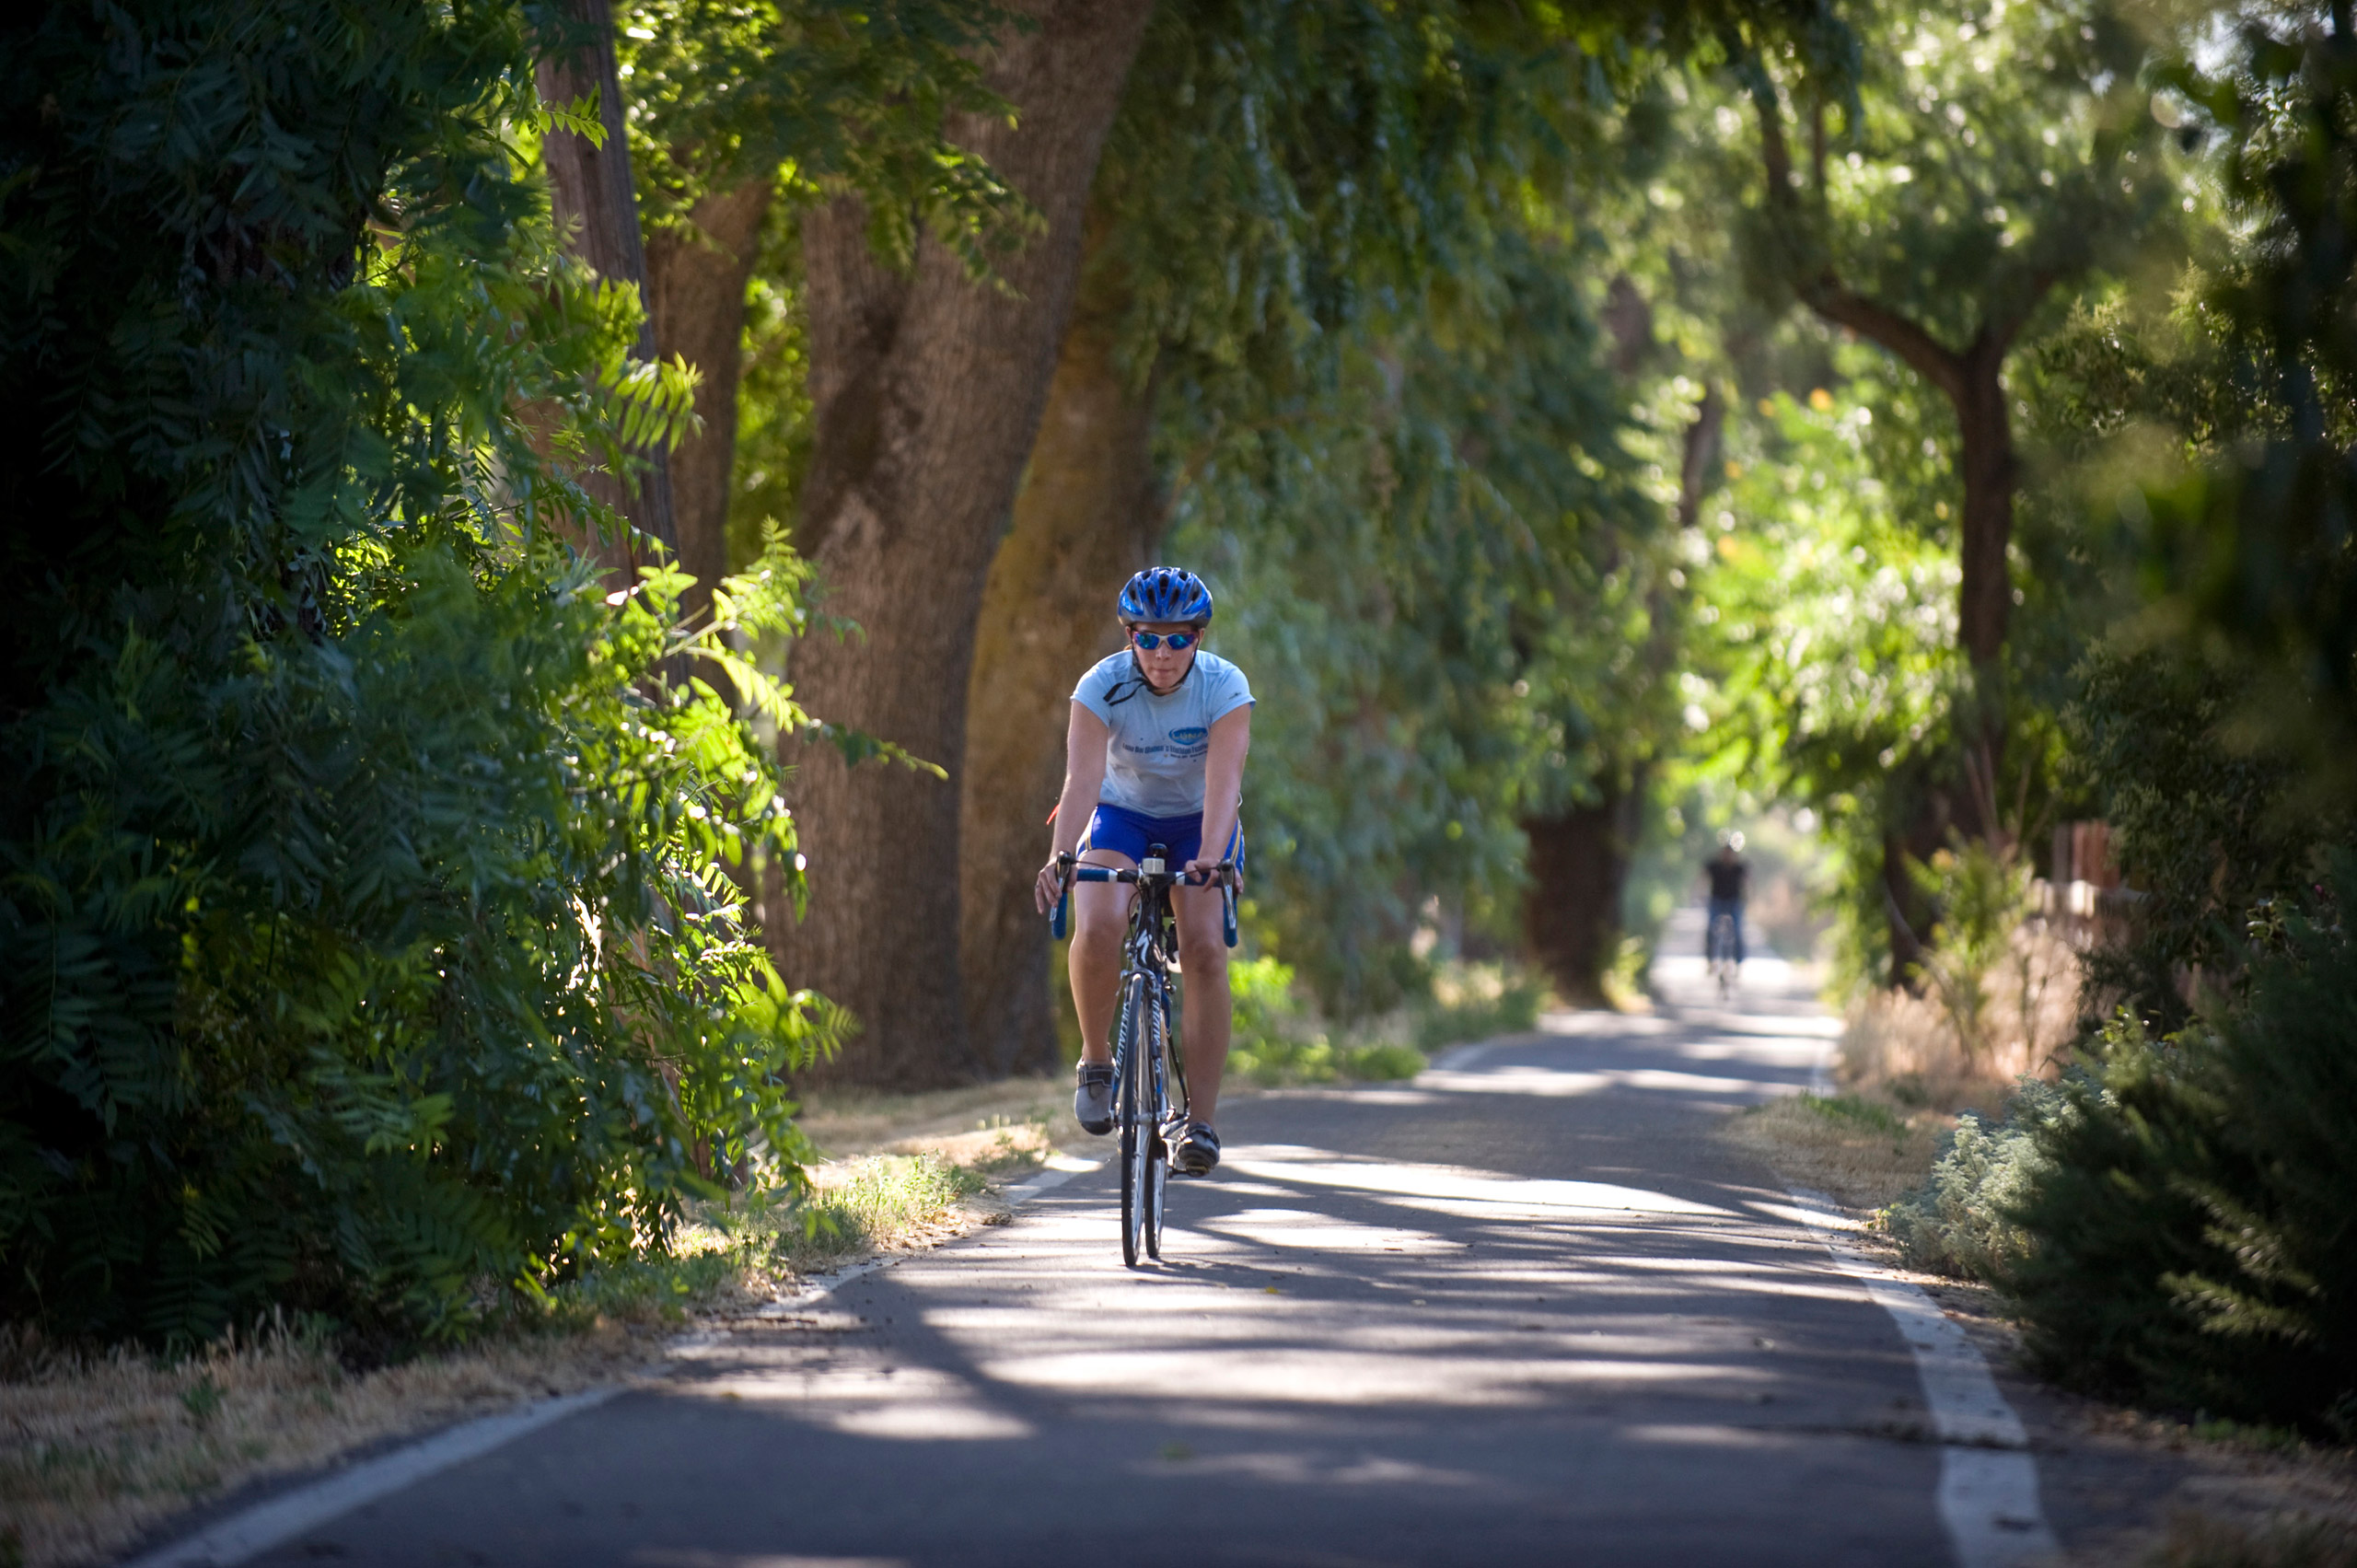 A bicyclist rides west on the bike trail which parallels Russell Boulevard in Davis, Calif., on June 30, 2010.